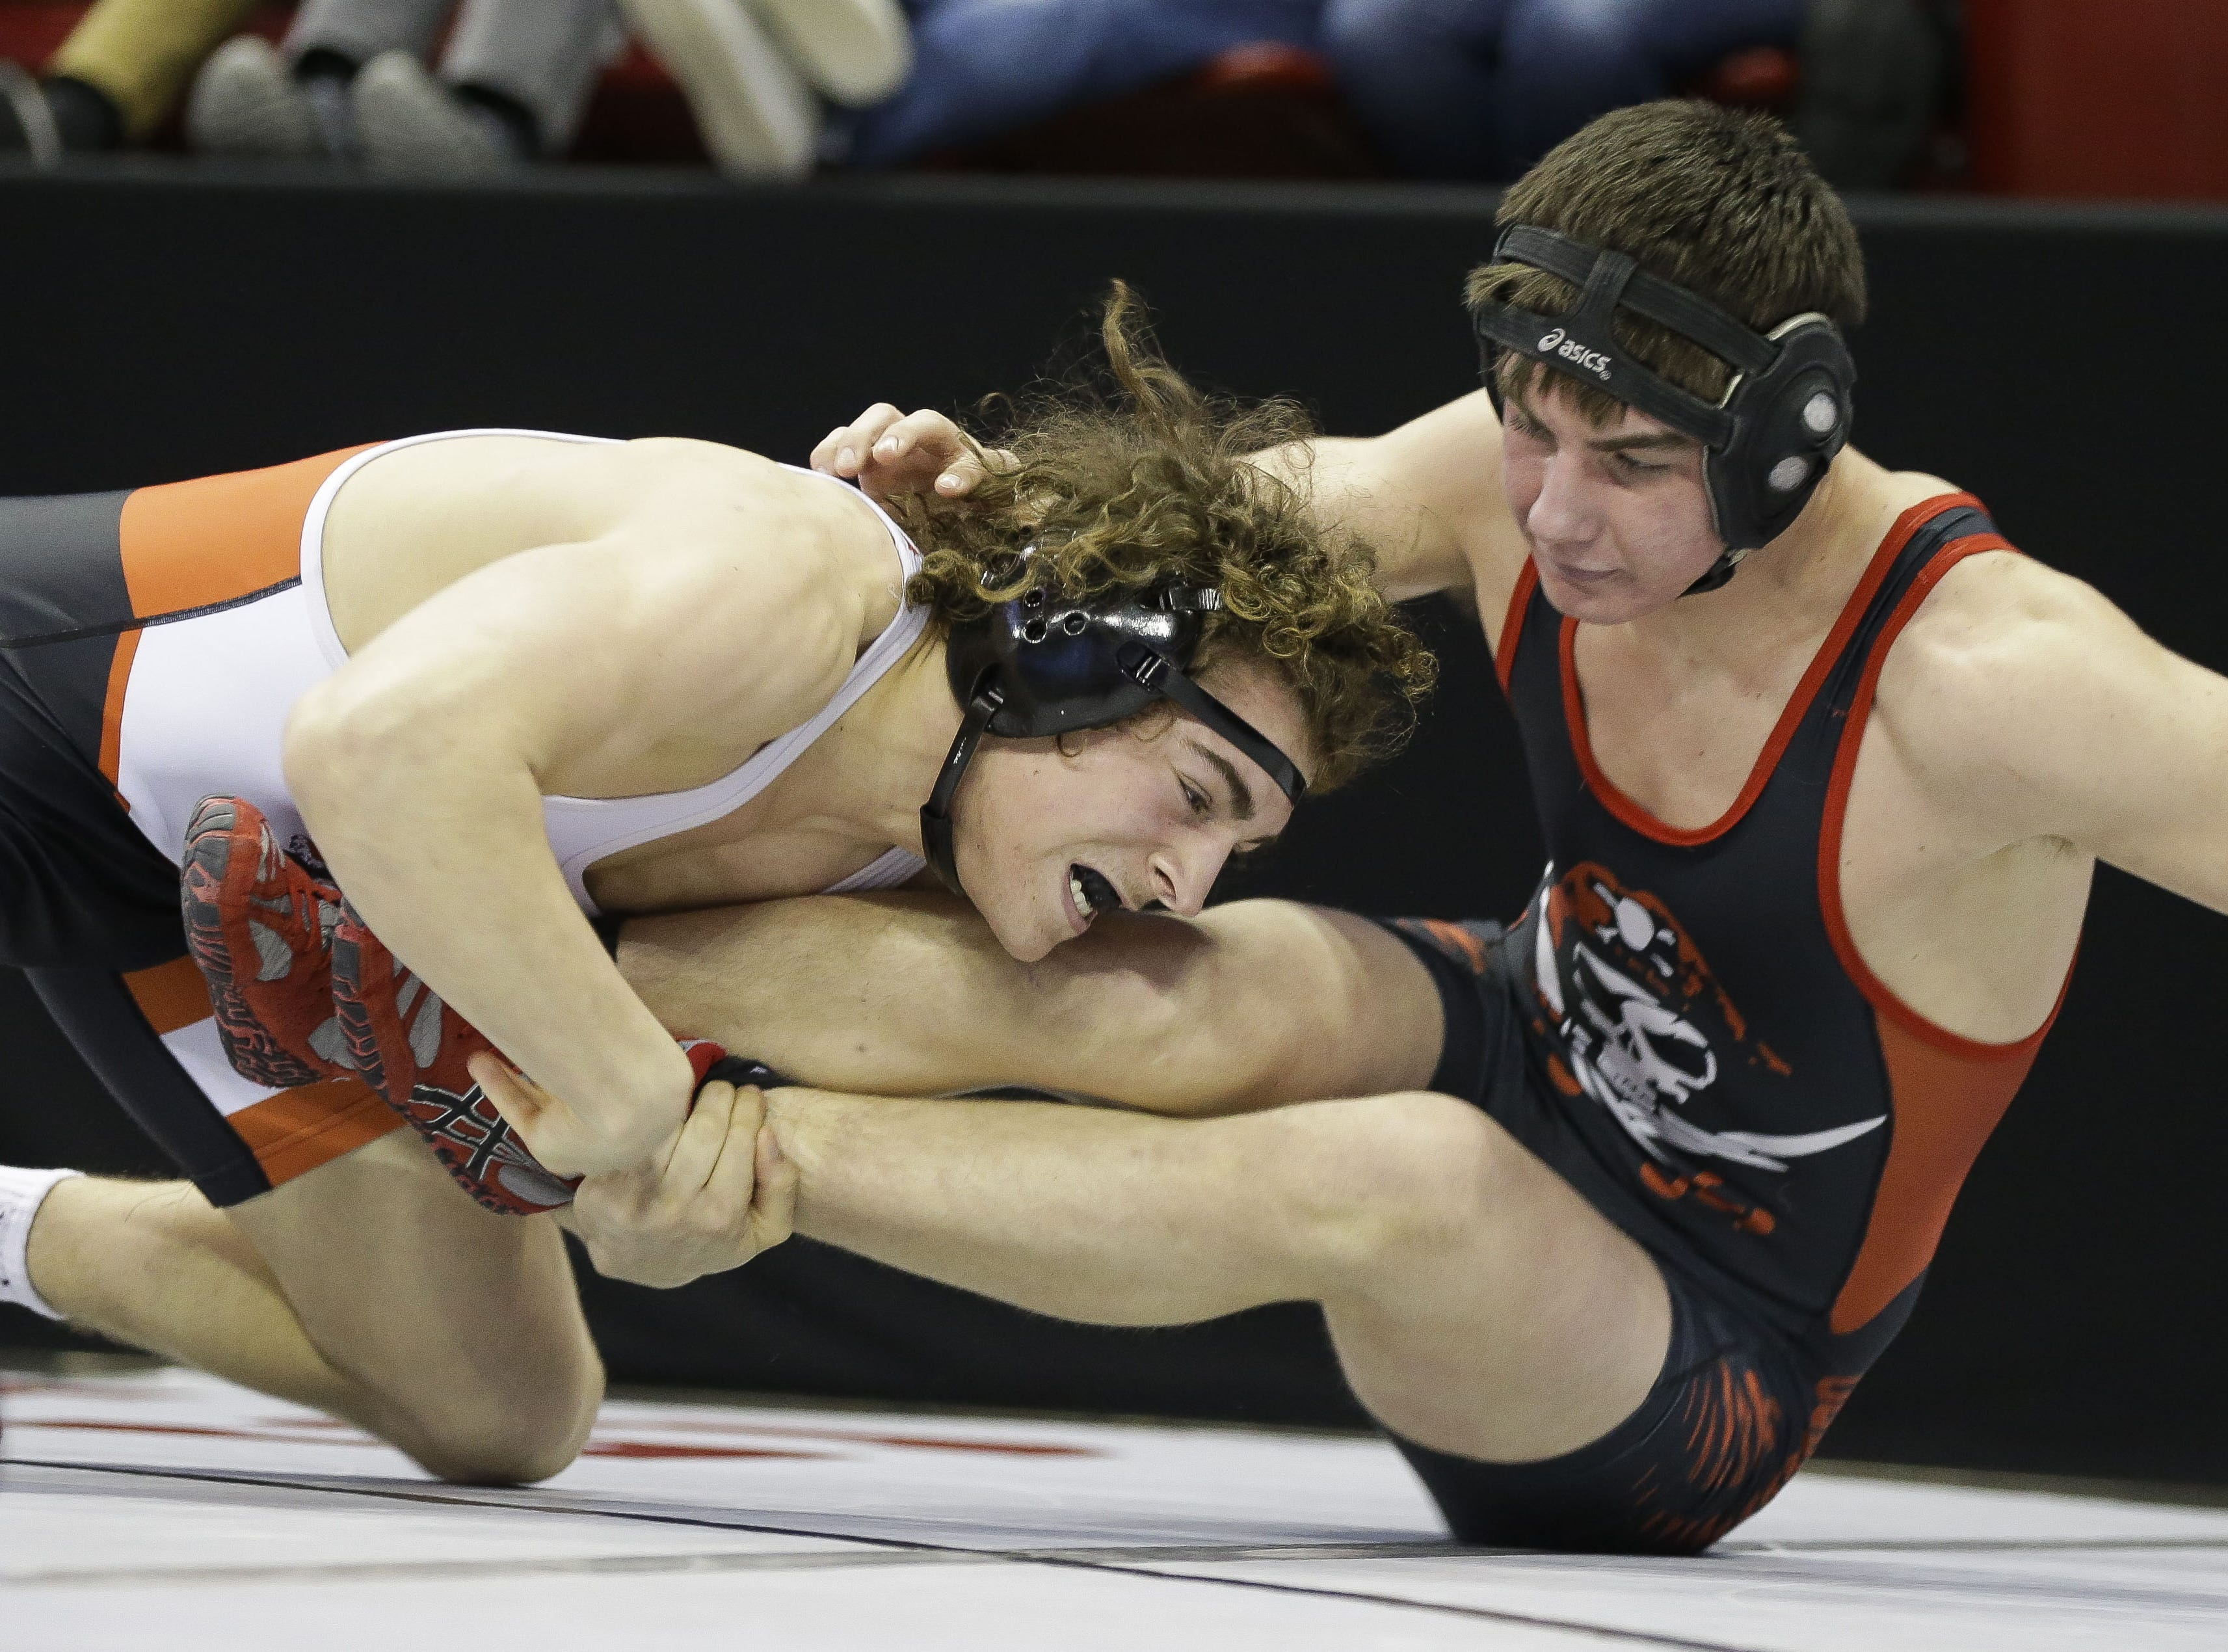 Marshfield's Bentley Schwanebeck-Ostermann takes down Pewaukee's Joe Sklenar in a Division 1 182-pound preliminary match during the WIAA state wrestling tournament on Thursday, February 21, 2019, at the Kohl Center in Madison, Wis. Tork Mason/USA TODAY NETWORK-Wisconsin